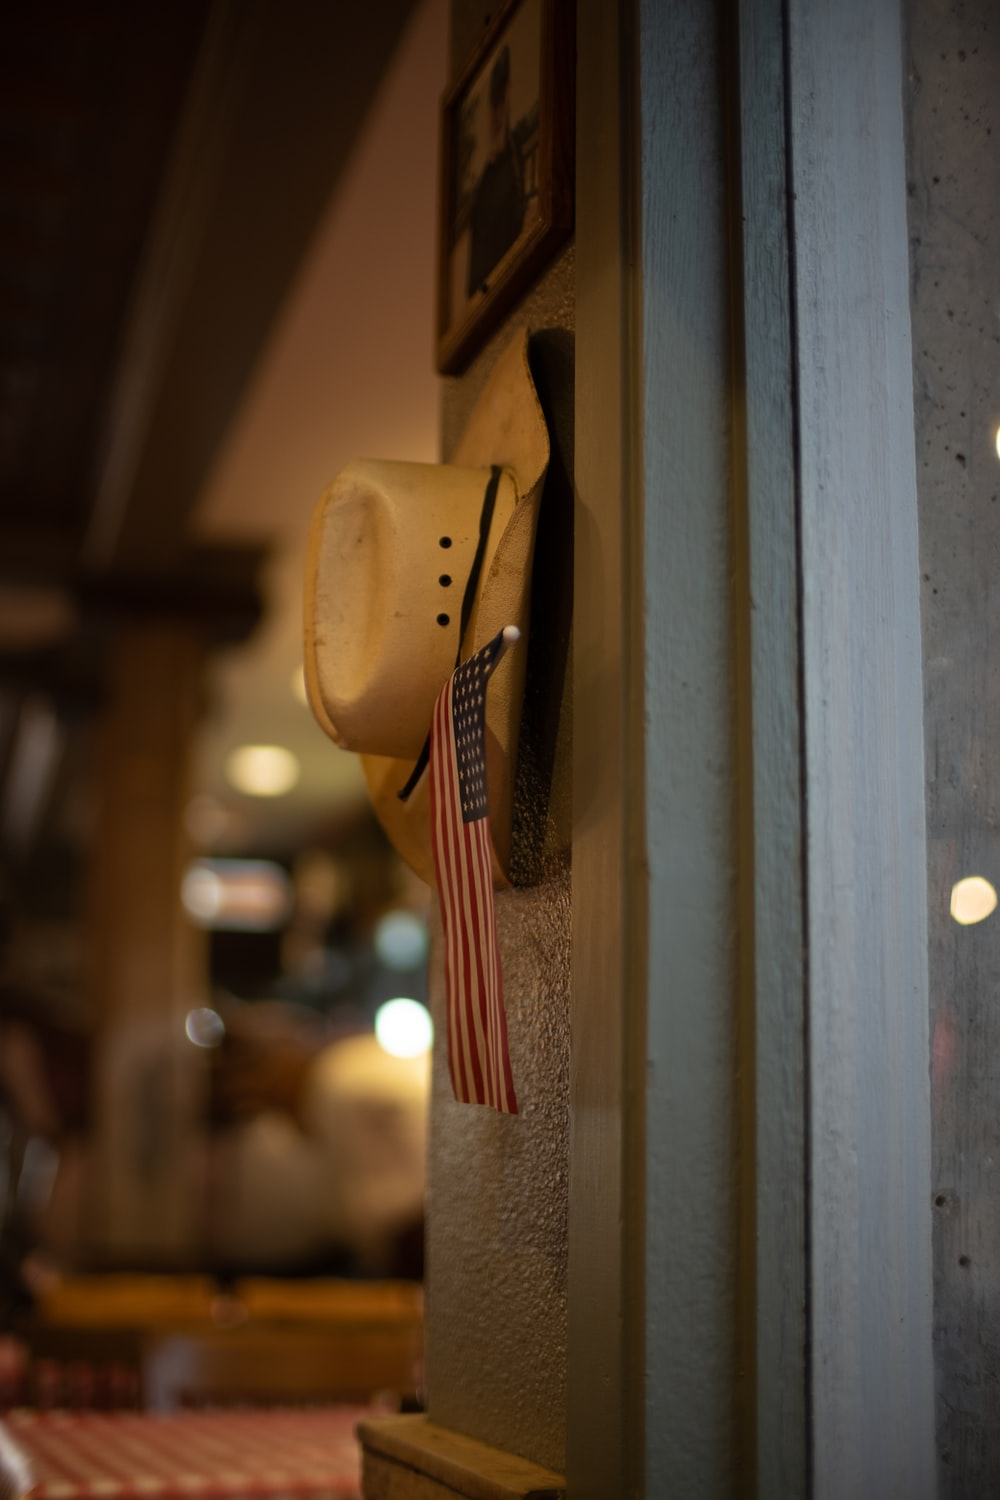 brown cowboy hat hanged on brown wooden wall